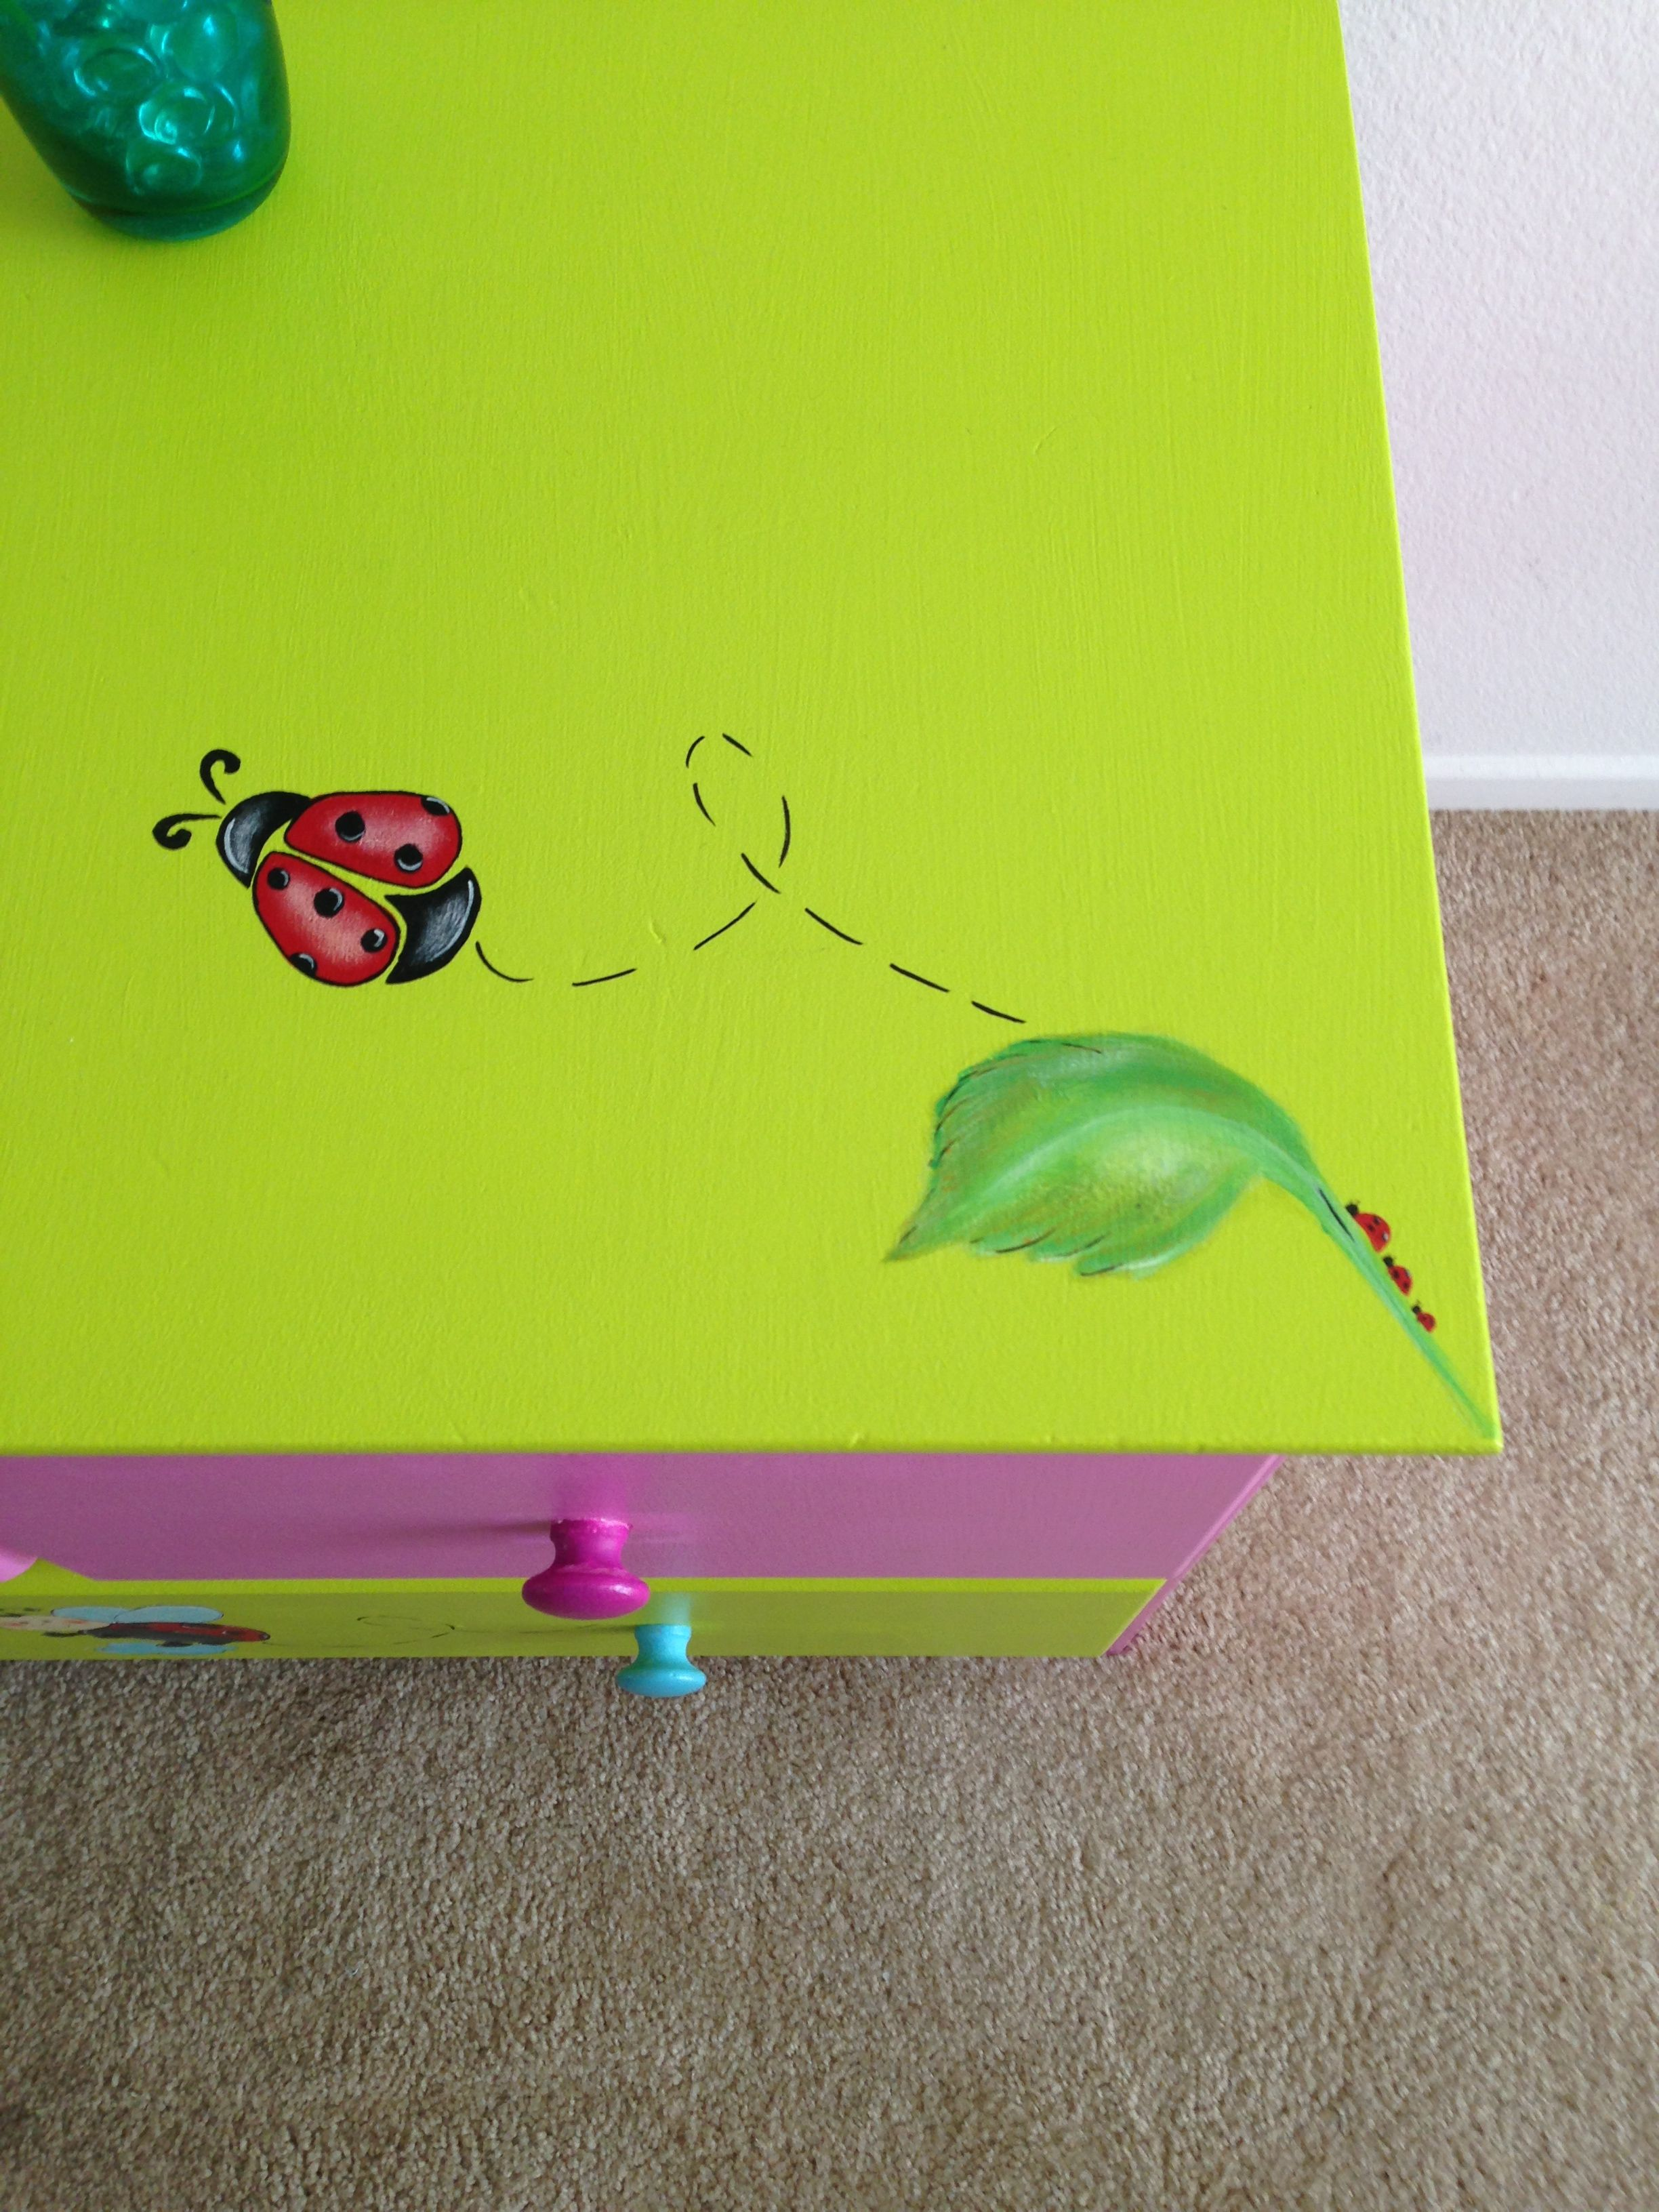 Lady Bug Collection Kids Furniture 8053909667 Lucia Simi Valley